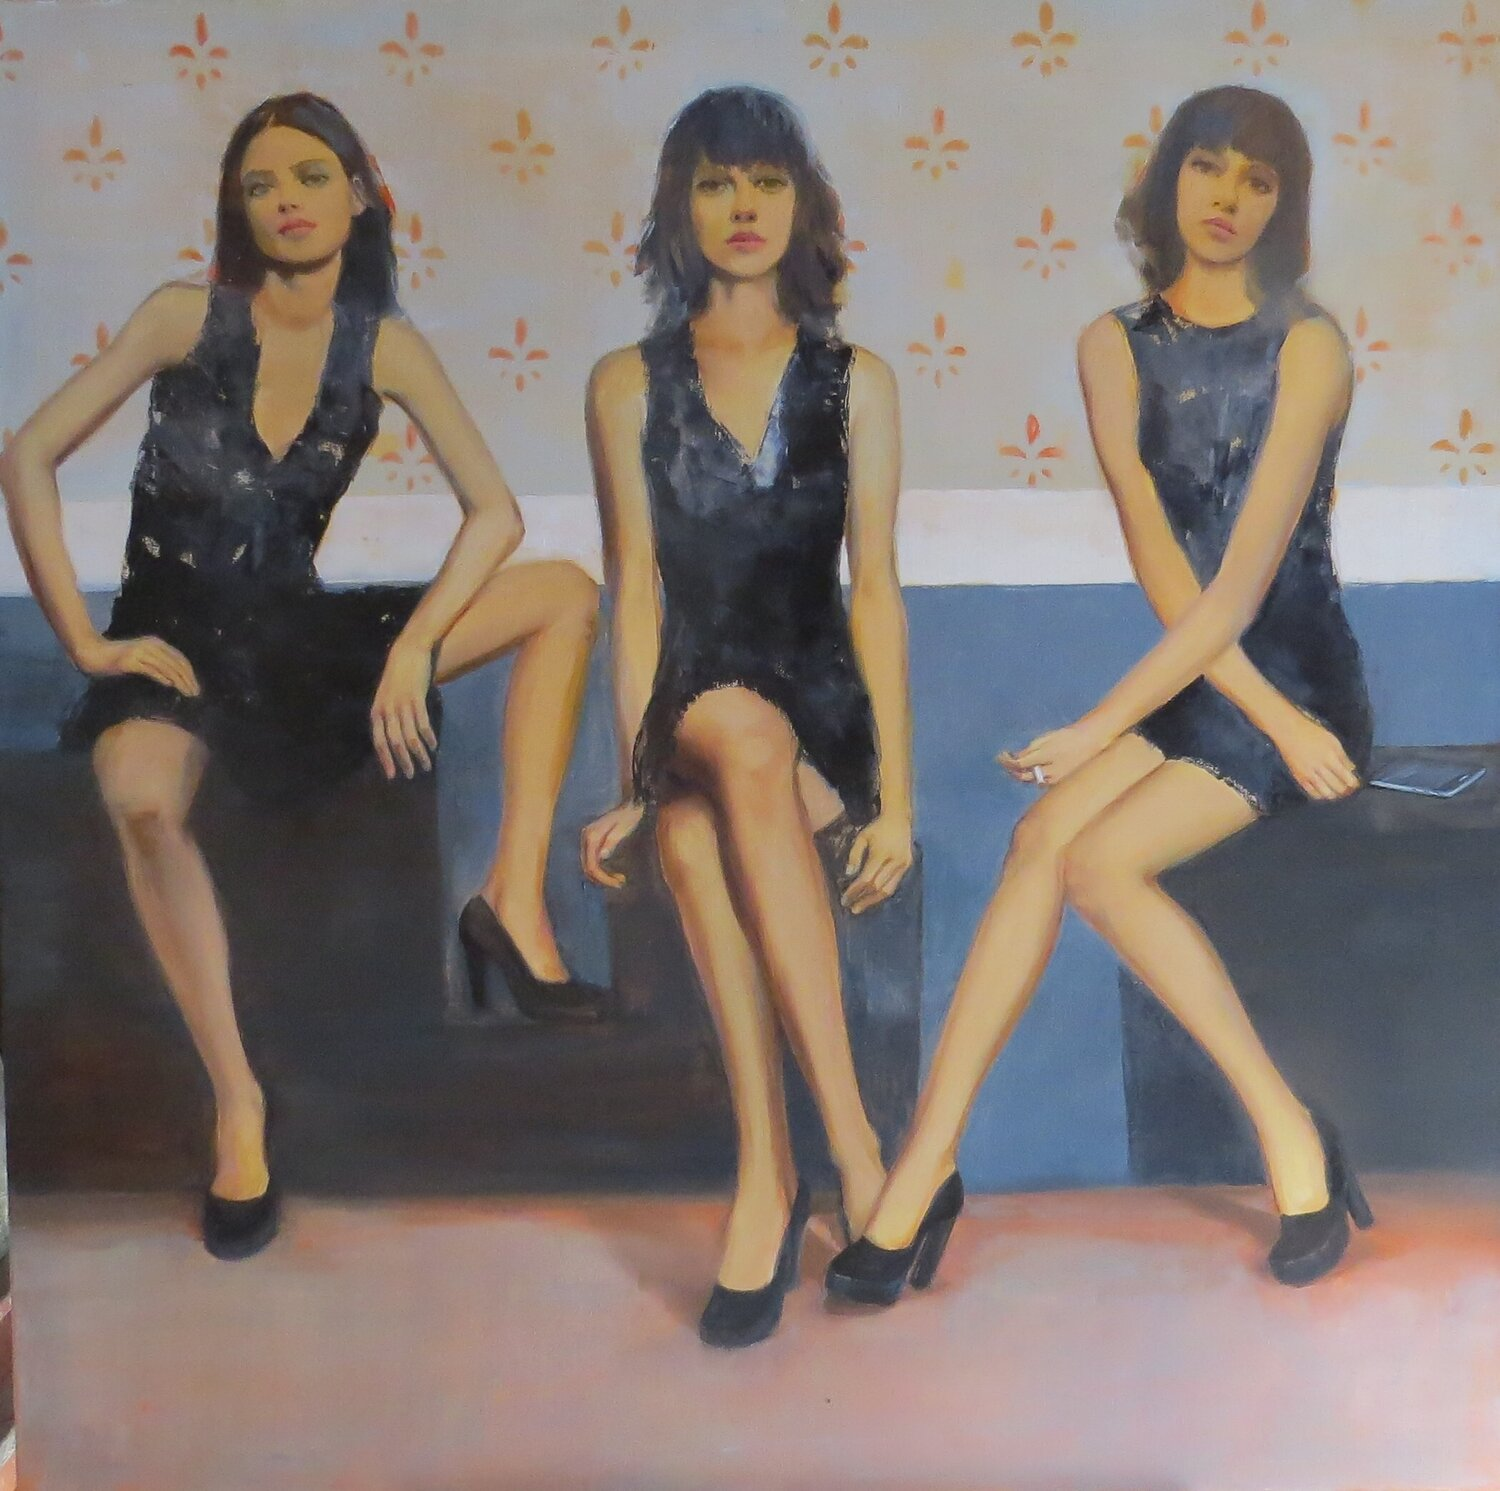 """Las chicas Margaritas "" olí on canvas 1.20m x 1.20m"